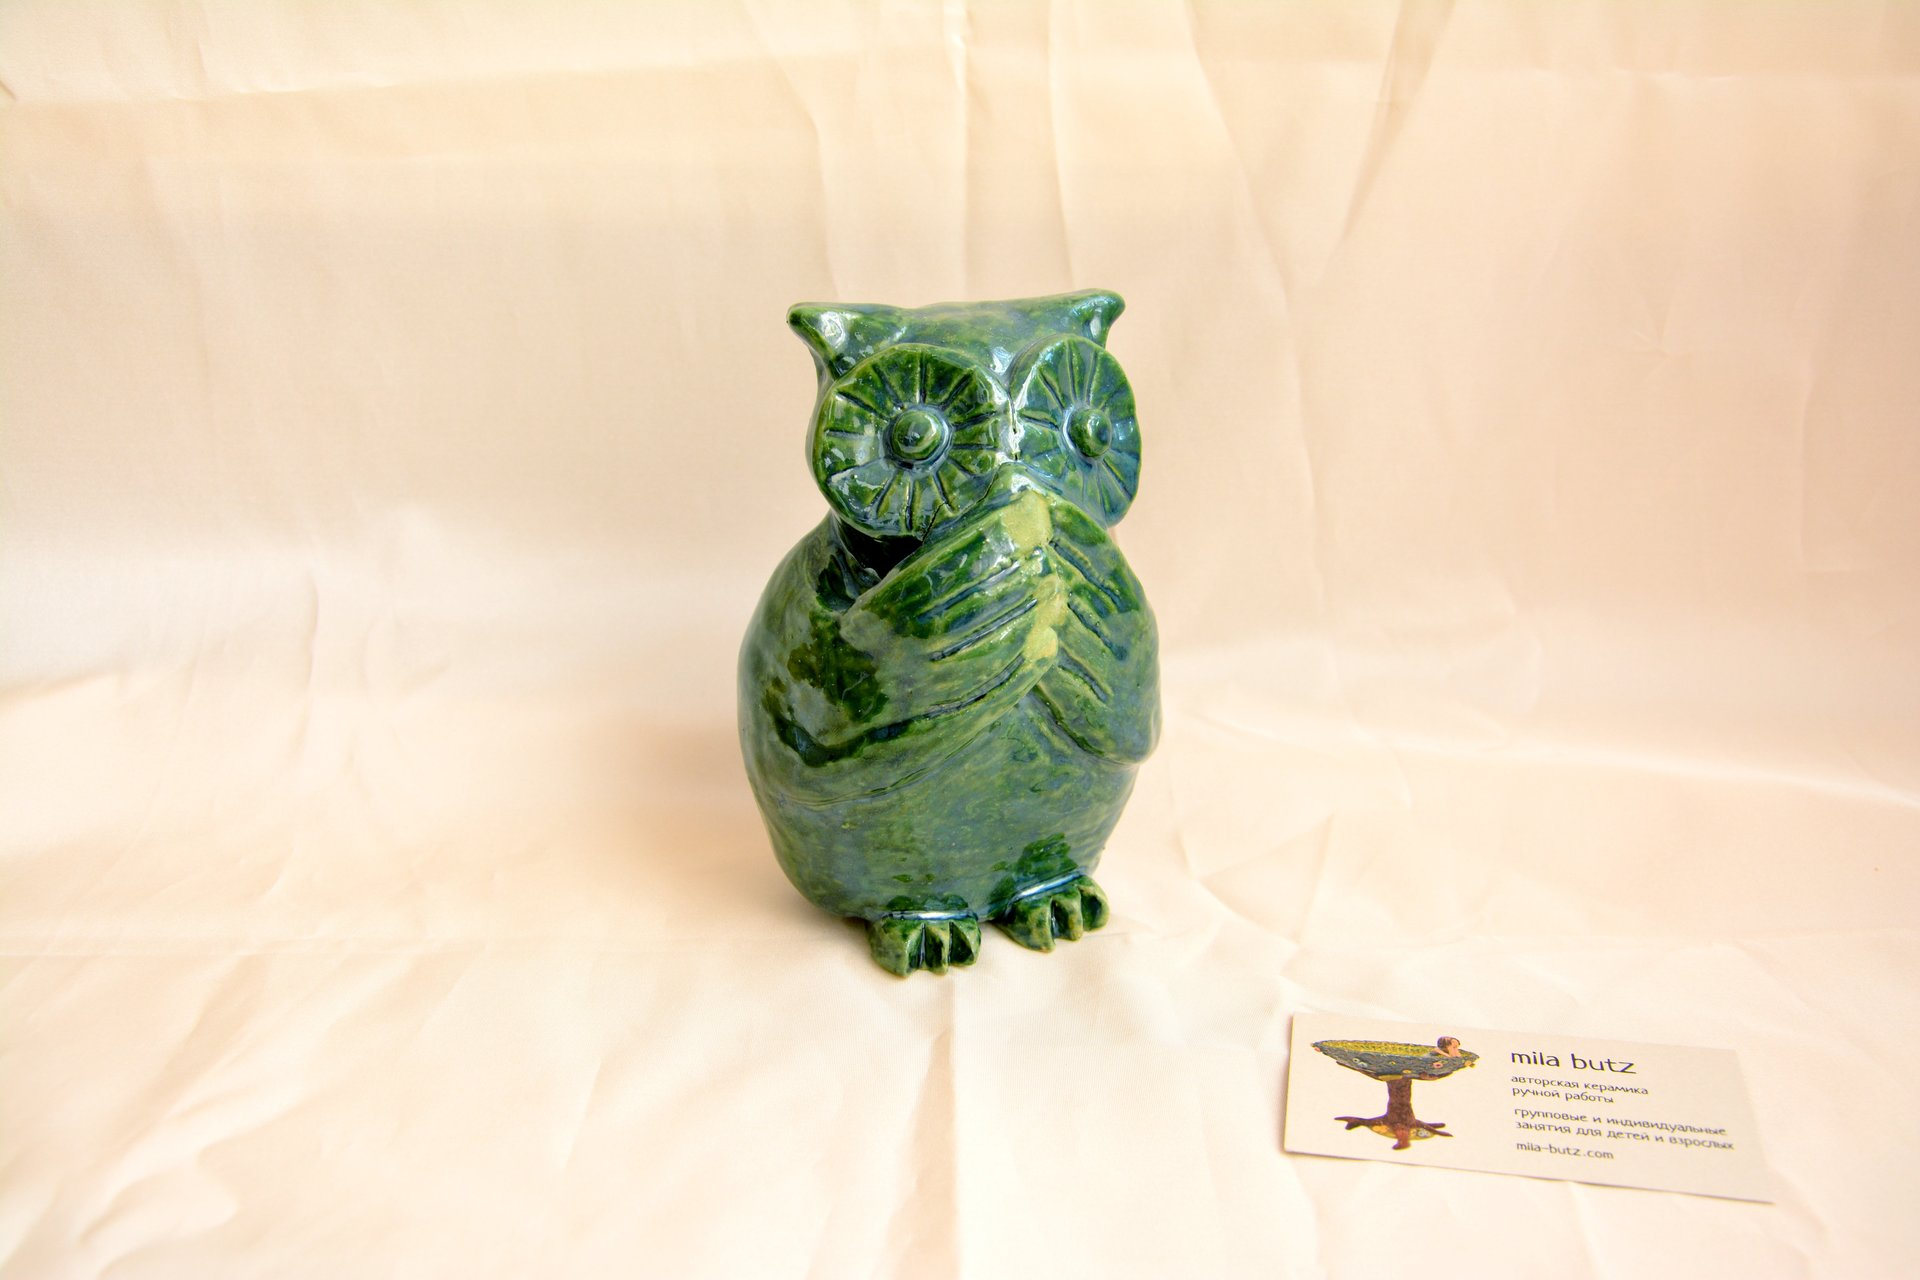 Owl «I will not say anything» - Animals and birds, height - 14cm, photo 2 of 4.